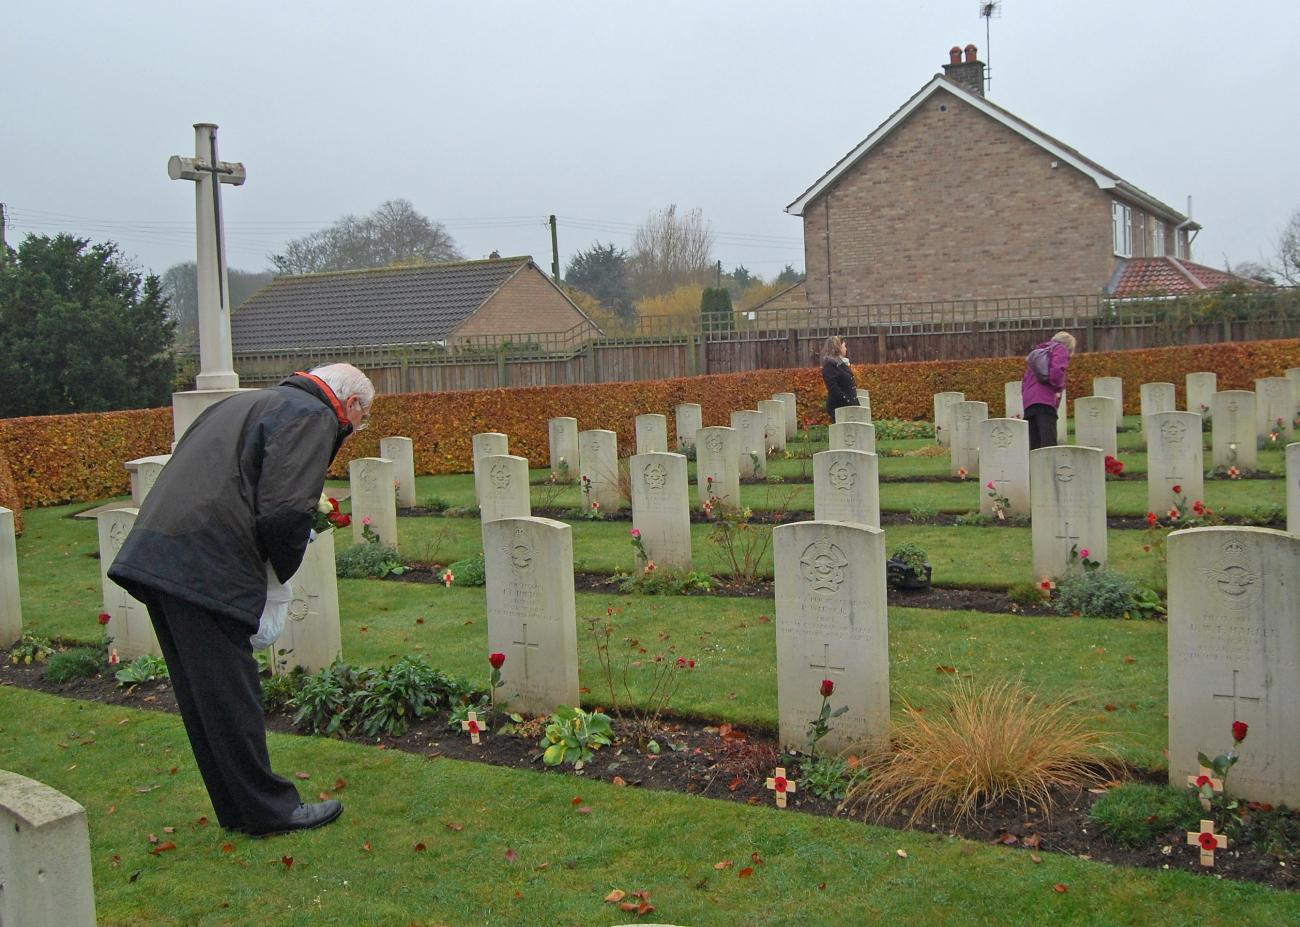 Laying out roses at St. Catherines, Barmby Moor on Rem Sunday 2011 - 102 Ceylon Squadron